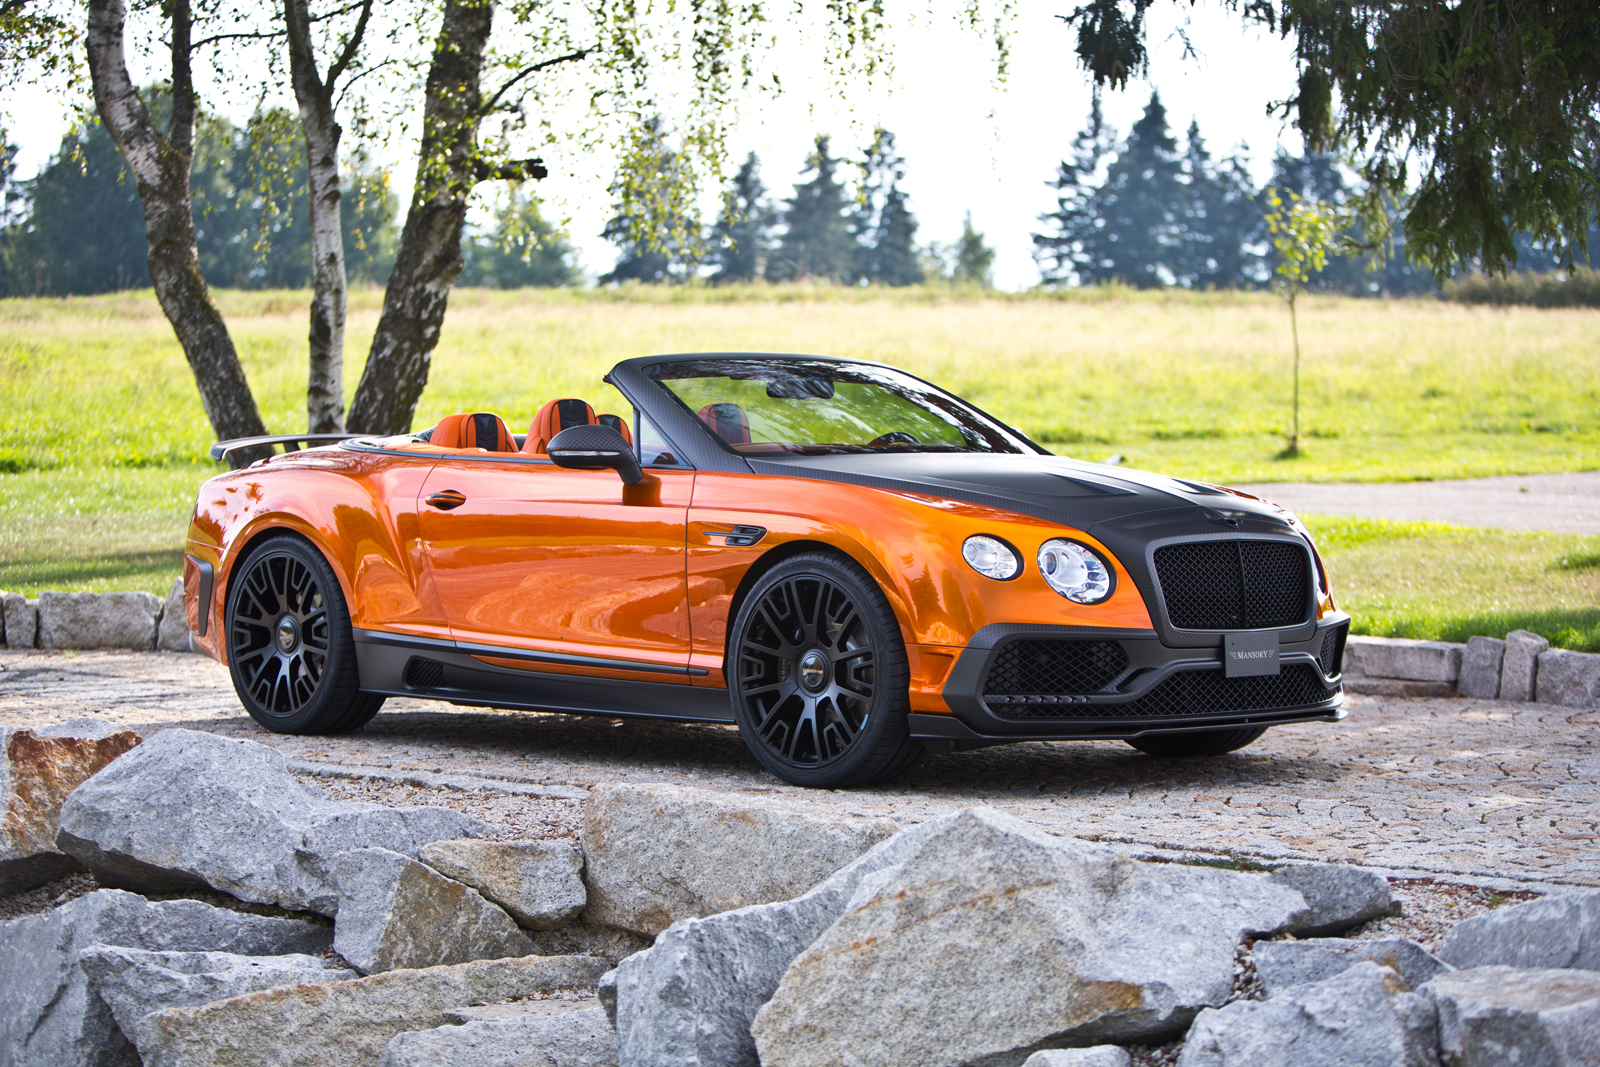 Carbon Fibber Bentley GTC from Mansory produces 1,001 HP